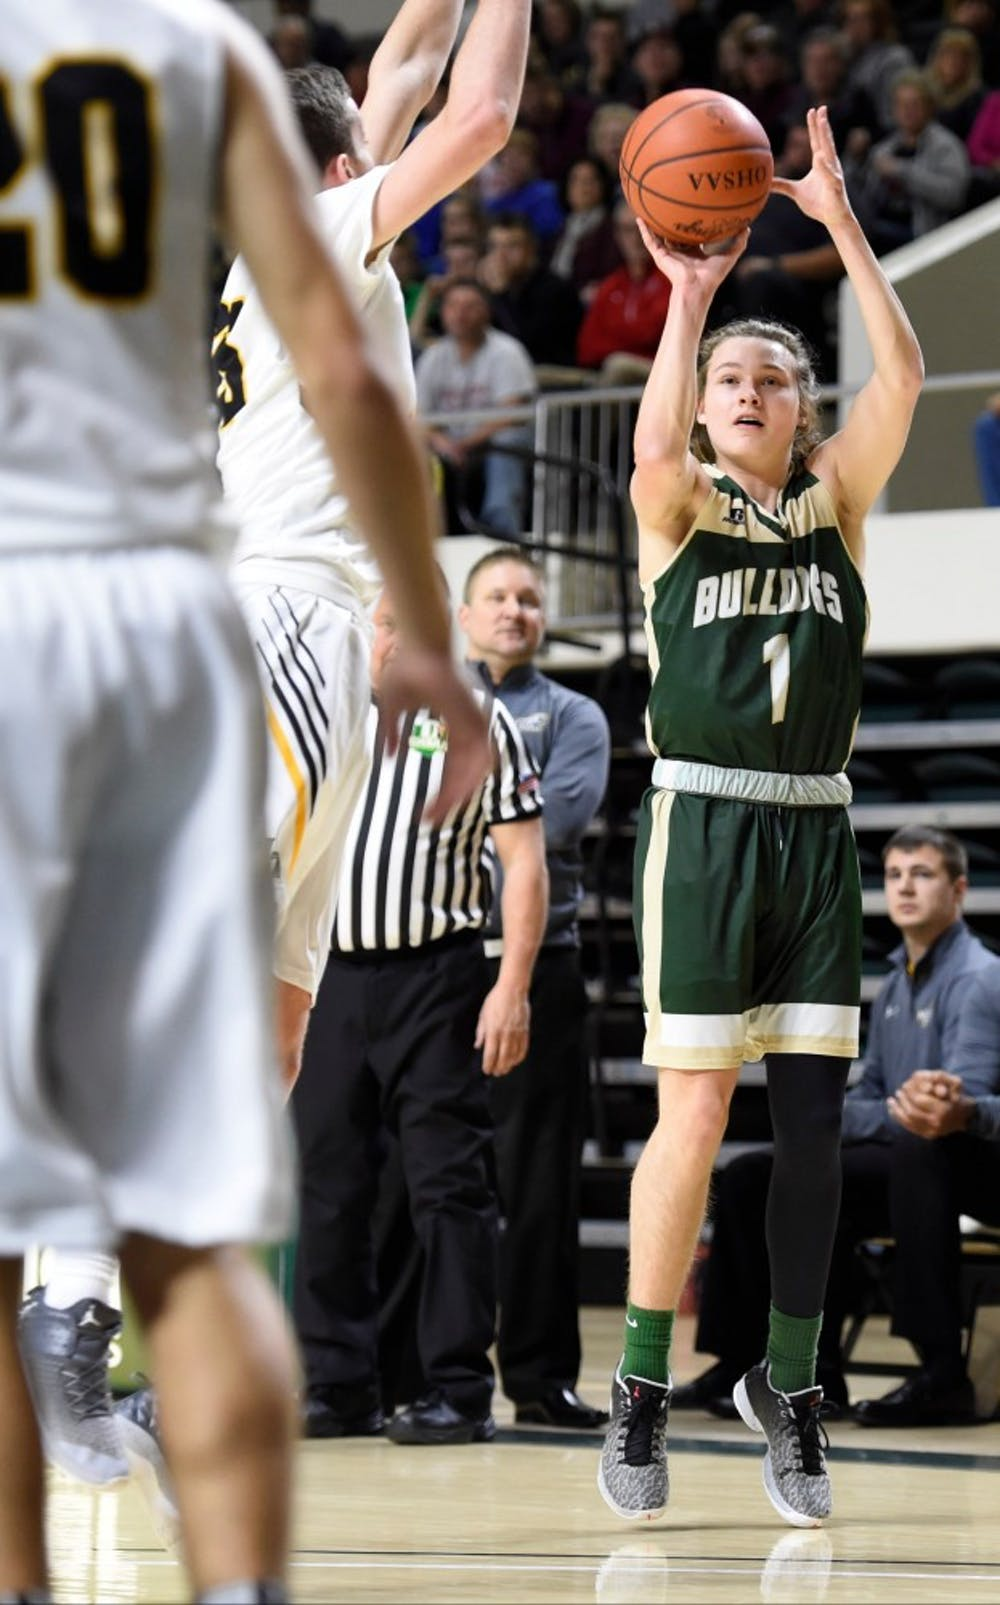 Athens Basketball: Micah Saltzman to take over point guard role this season